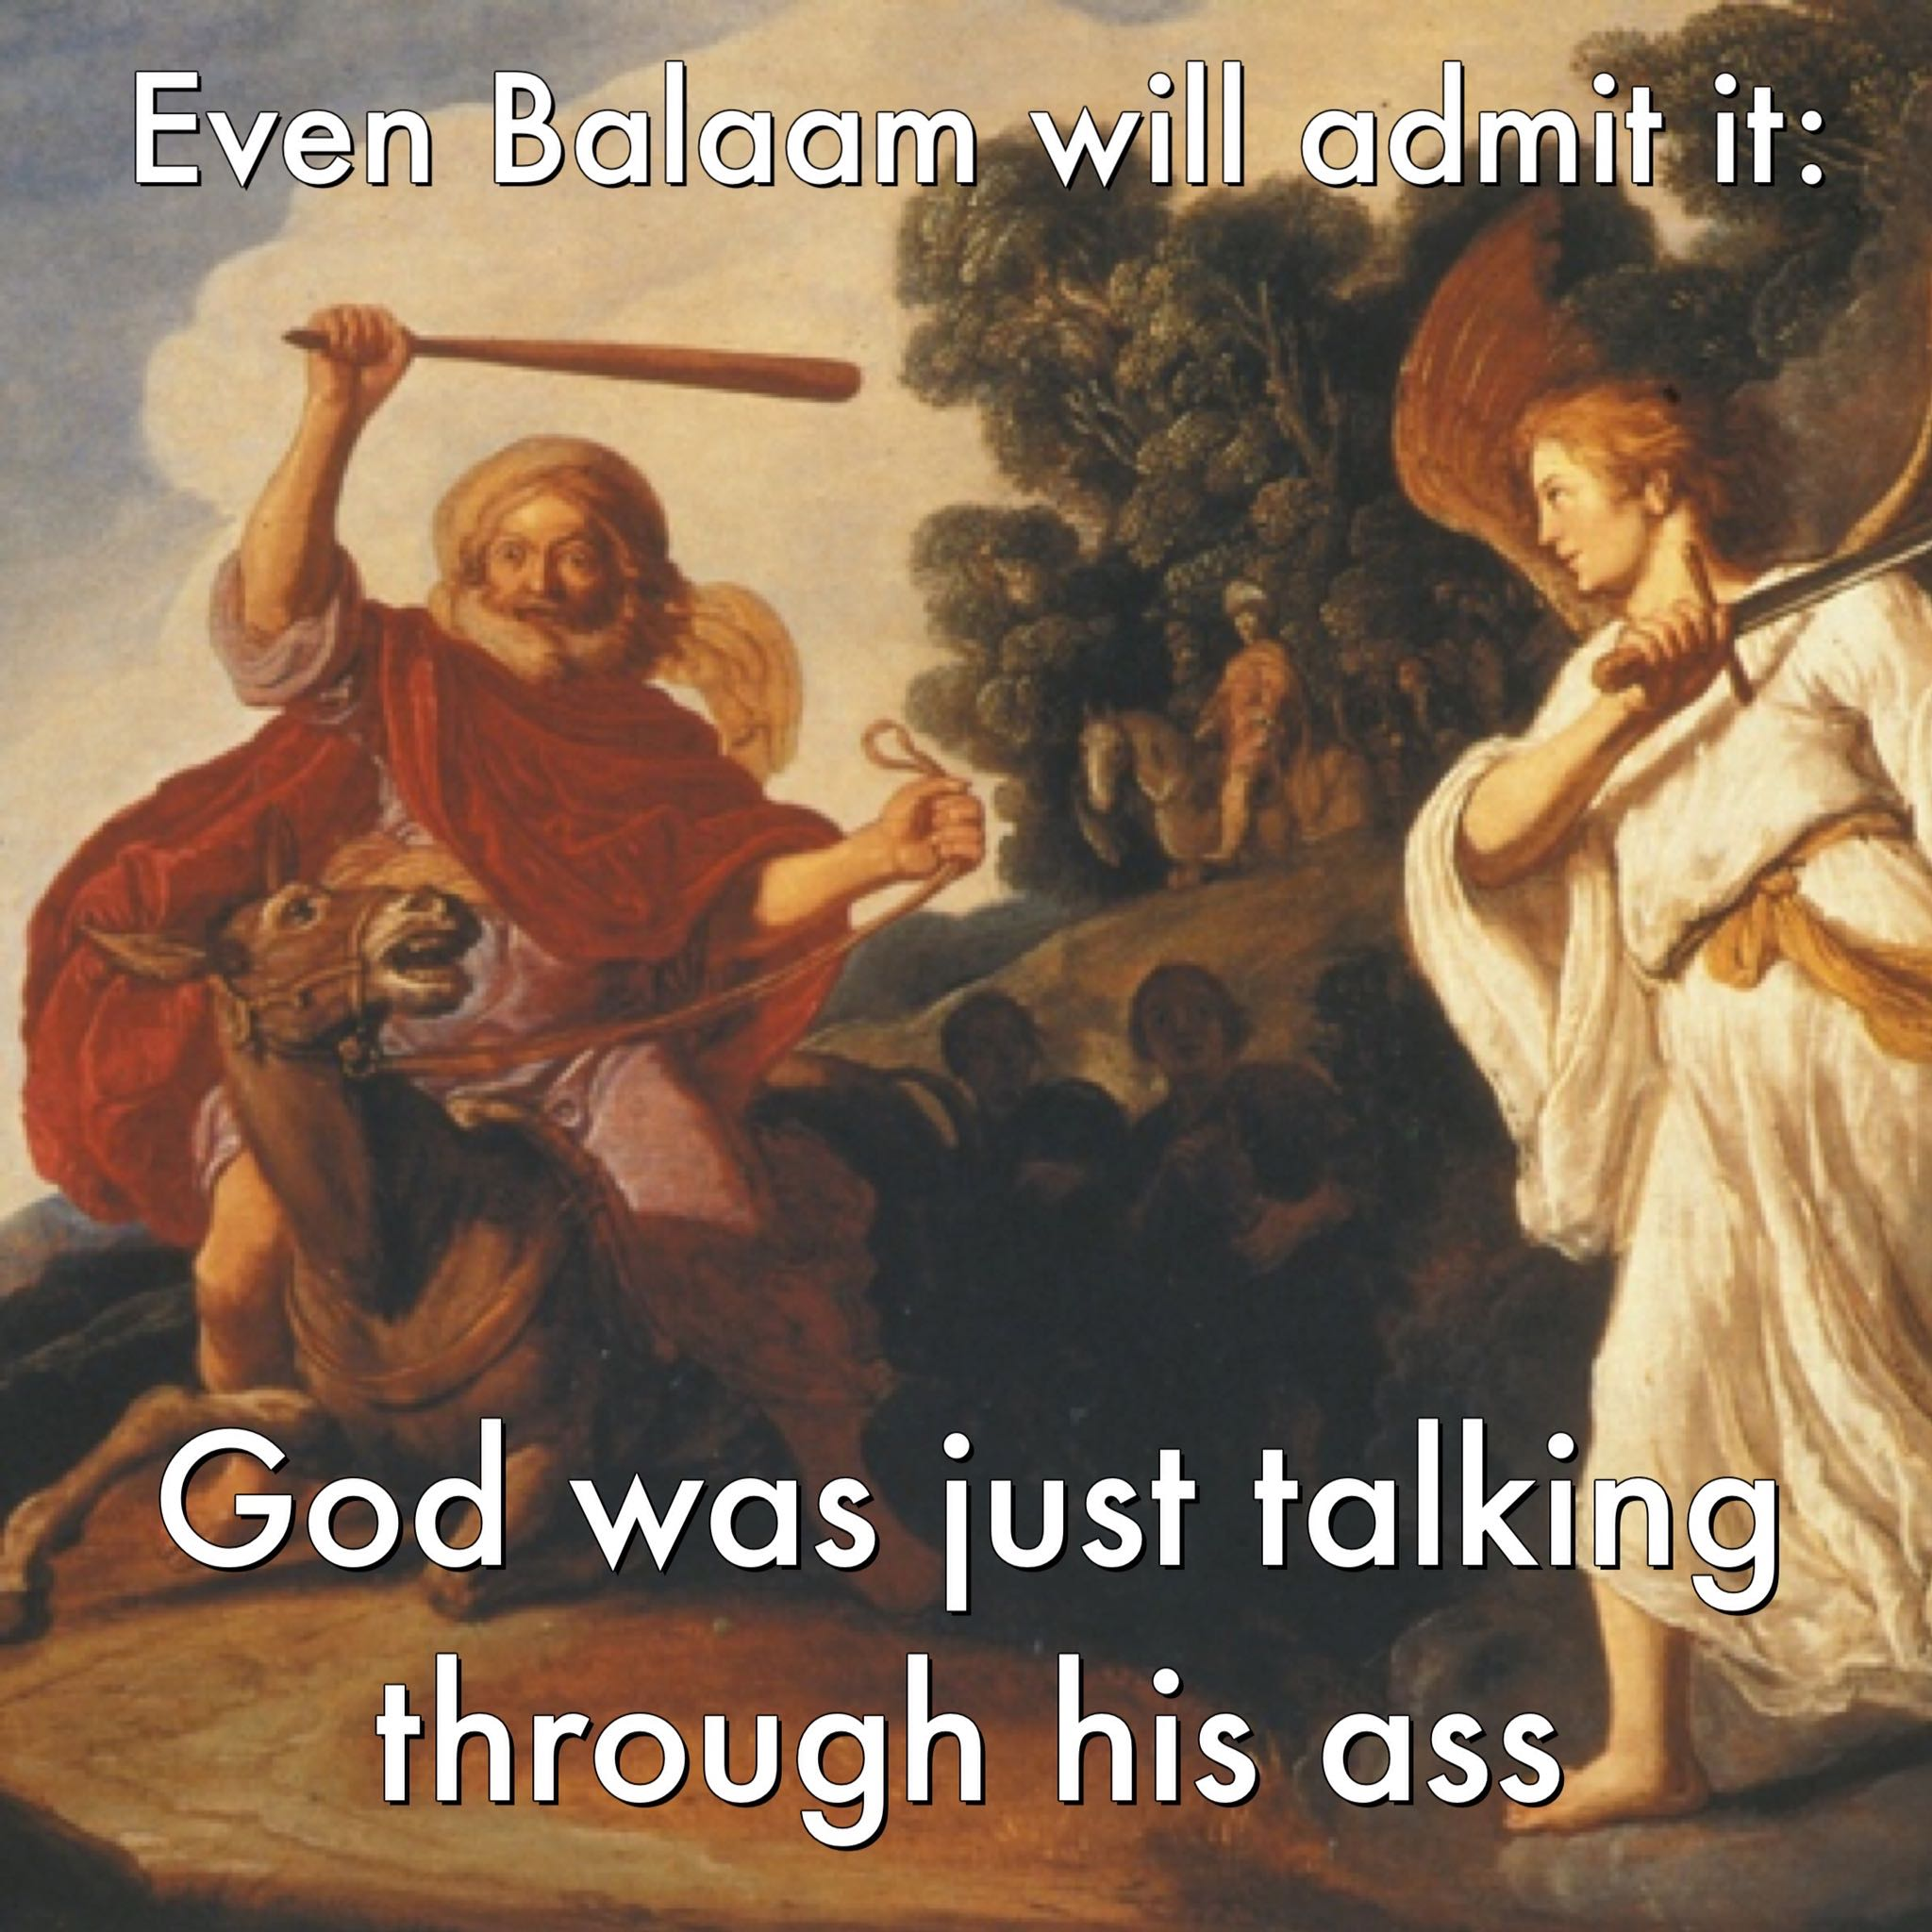 even balaam admits it